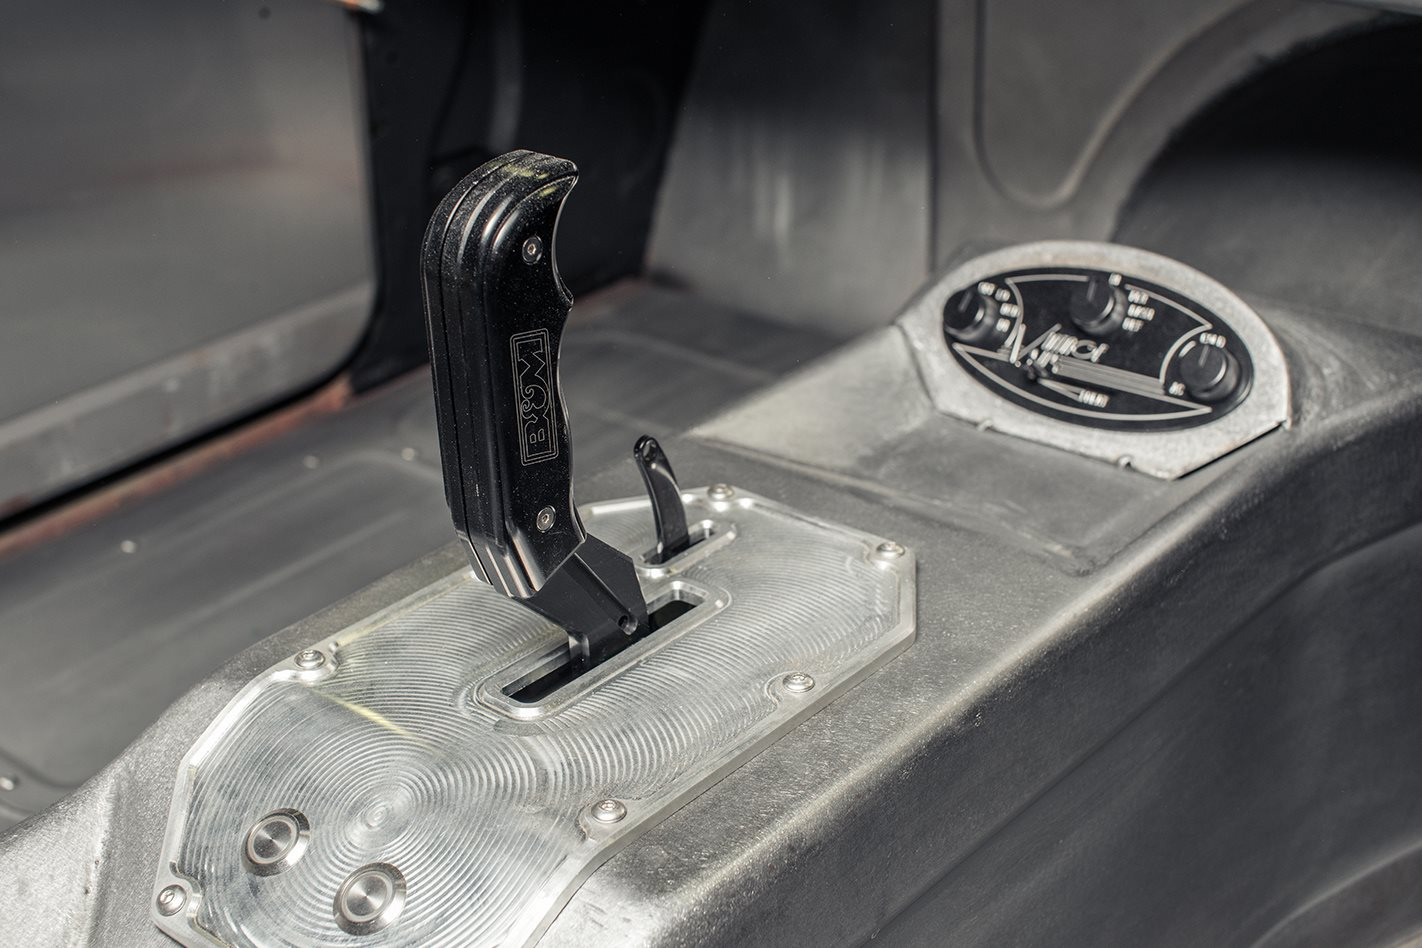 VG Valiant shifter